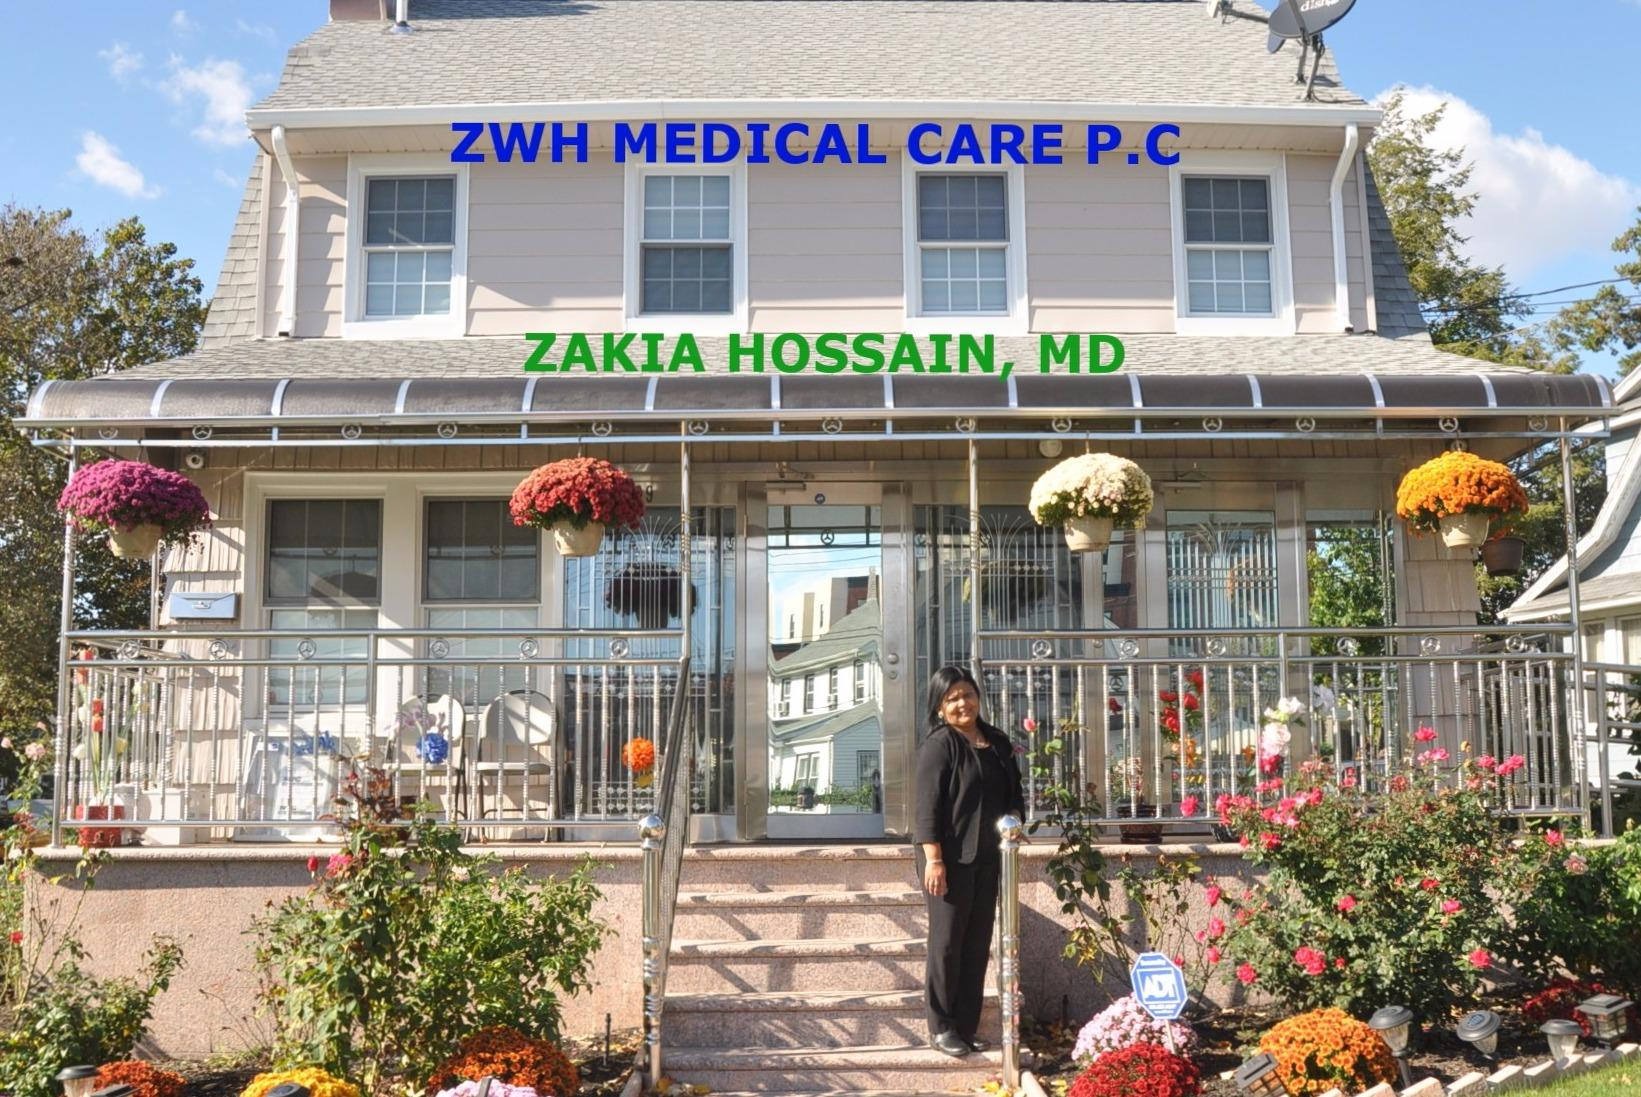 Dr zakia hossain md in jamaica ny whitepages for Furniture zone jamaica ny